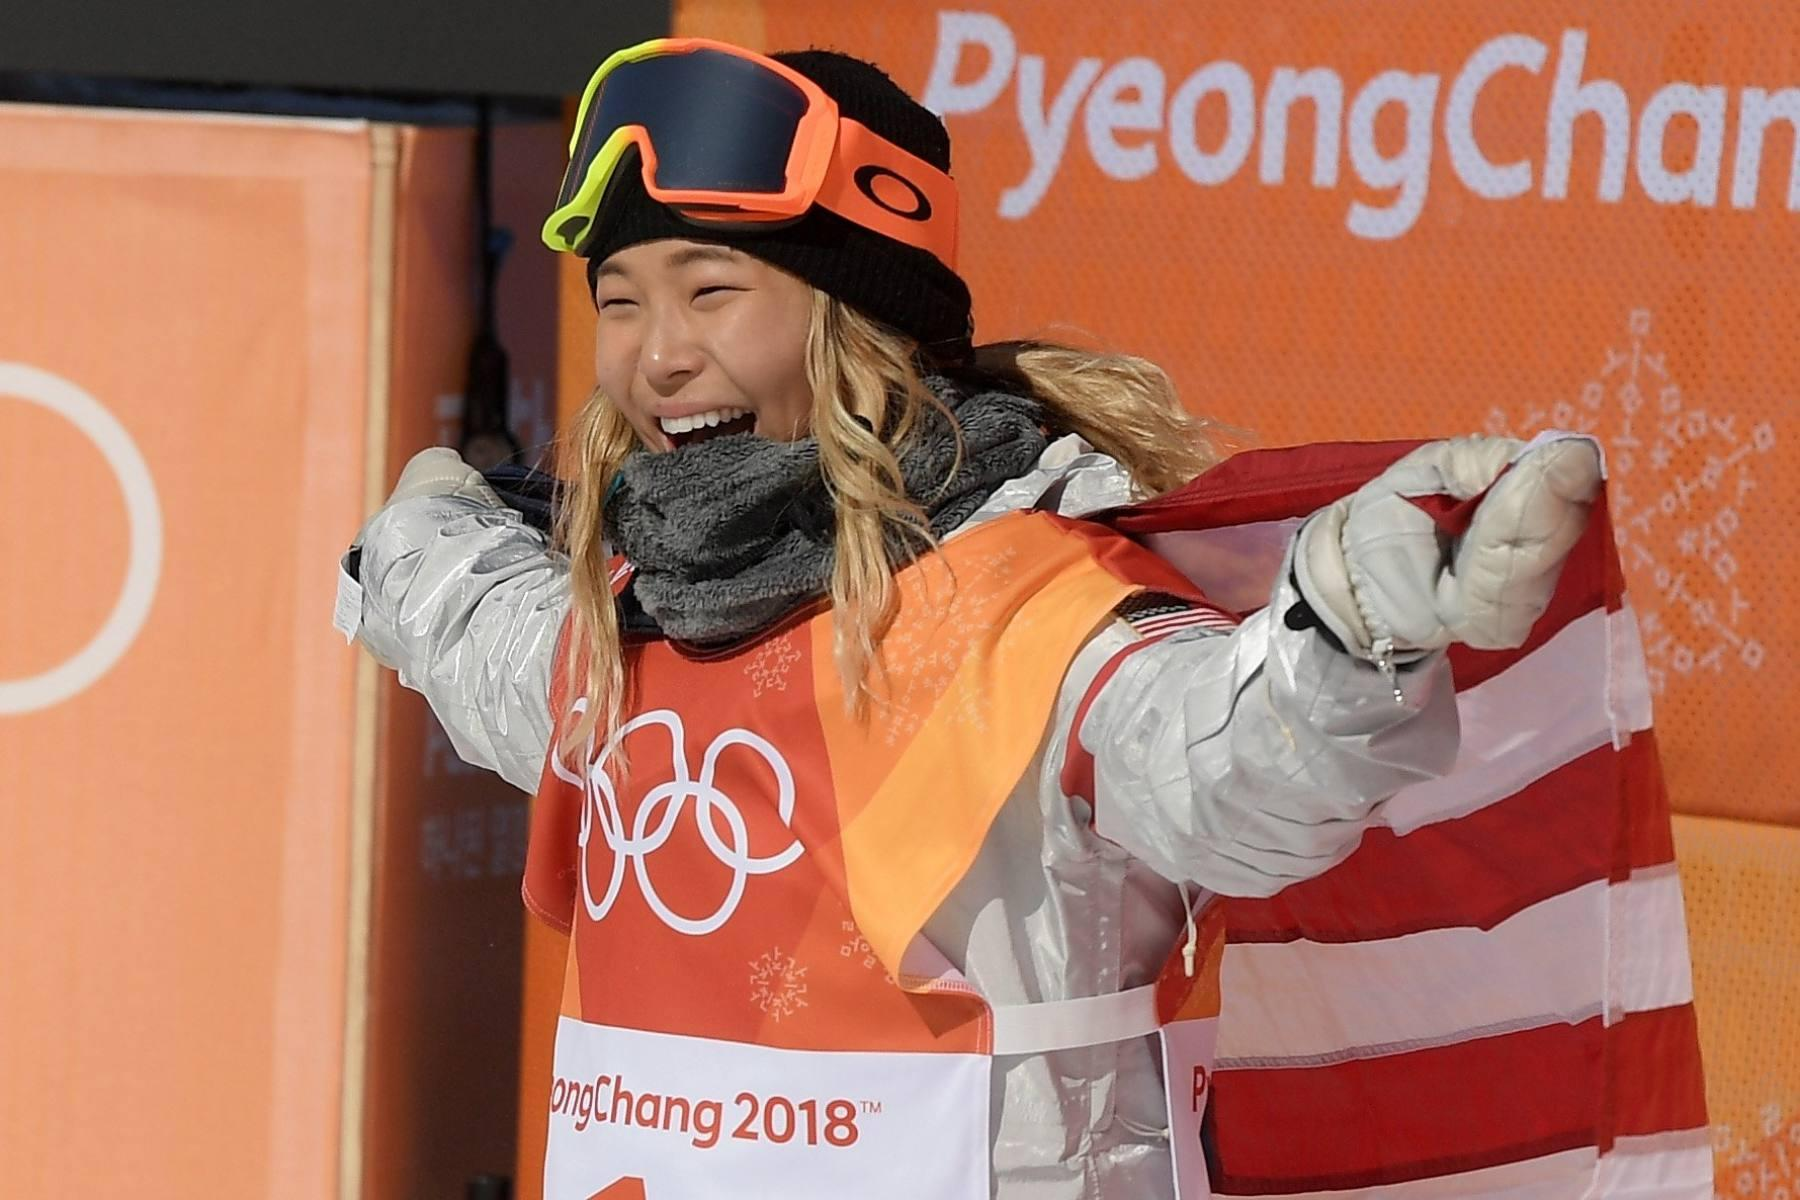 The Best Moments From The Winter Olympics 2018 So Far